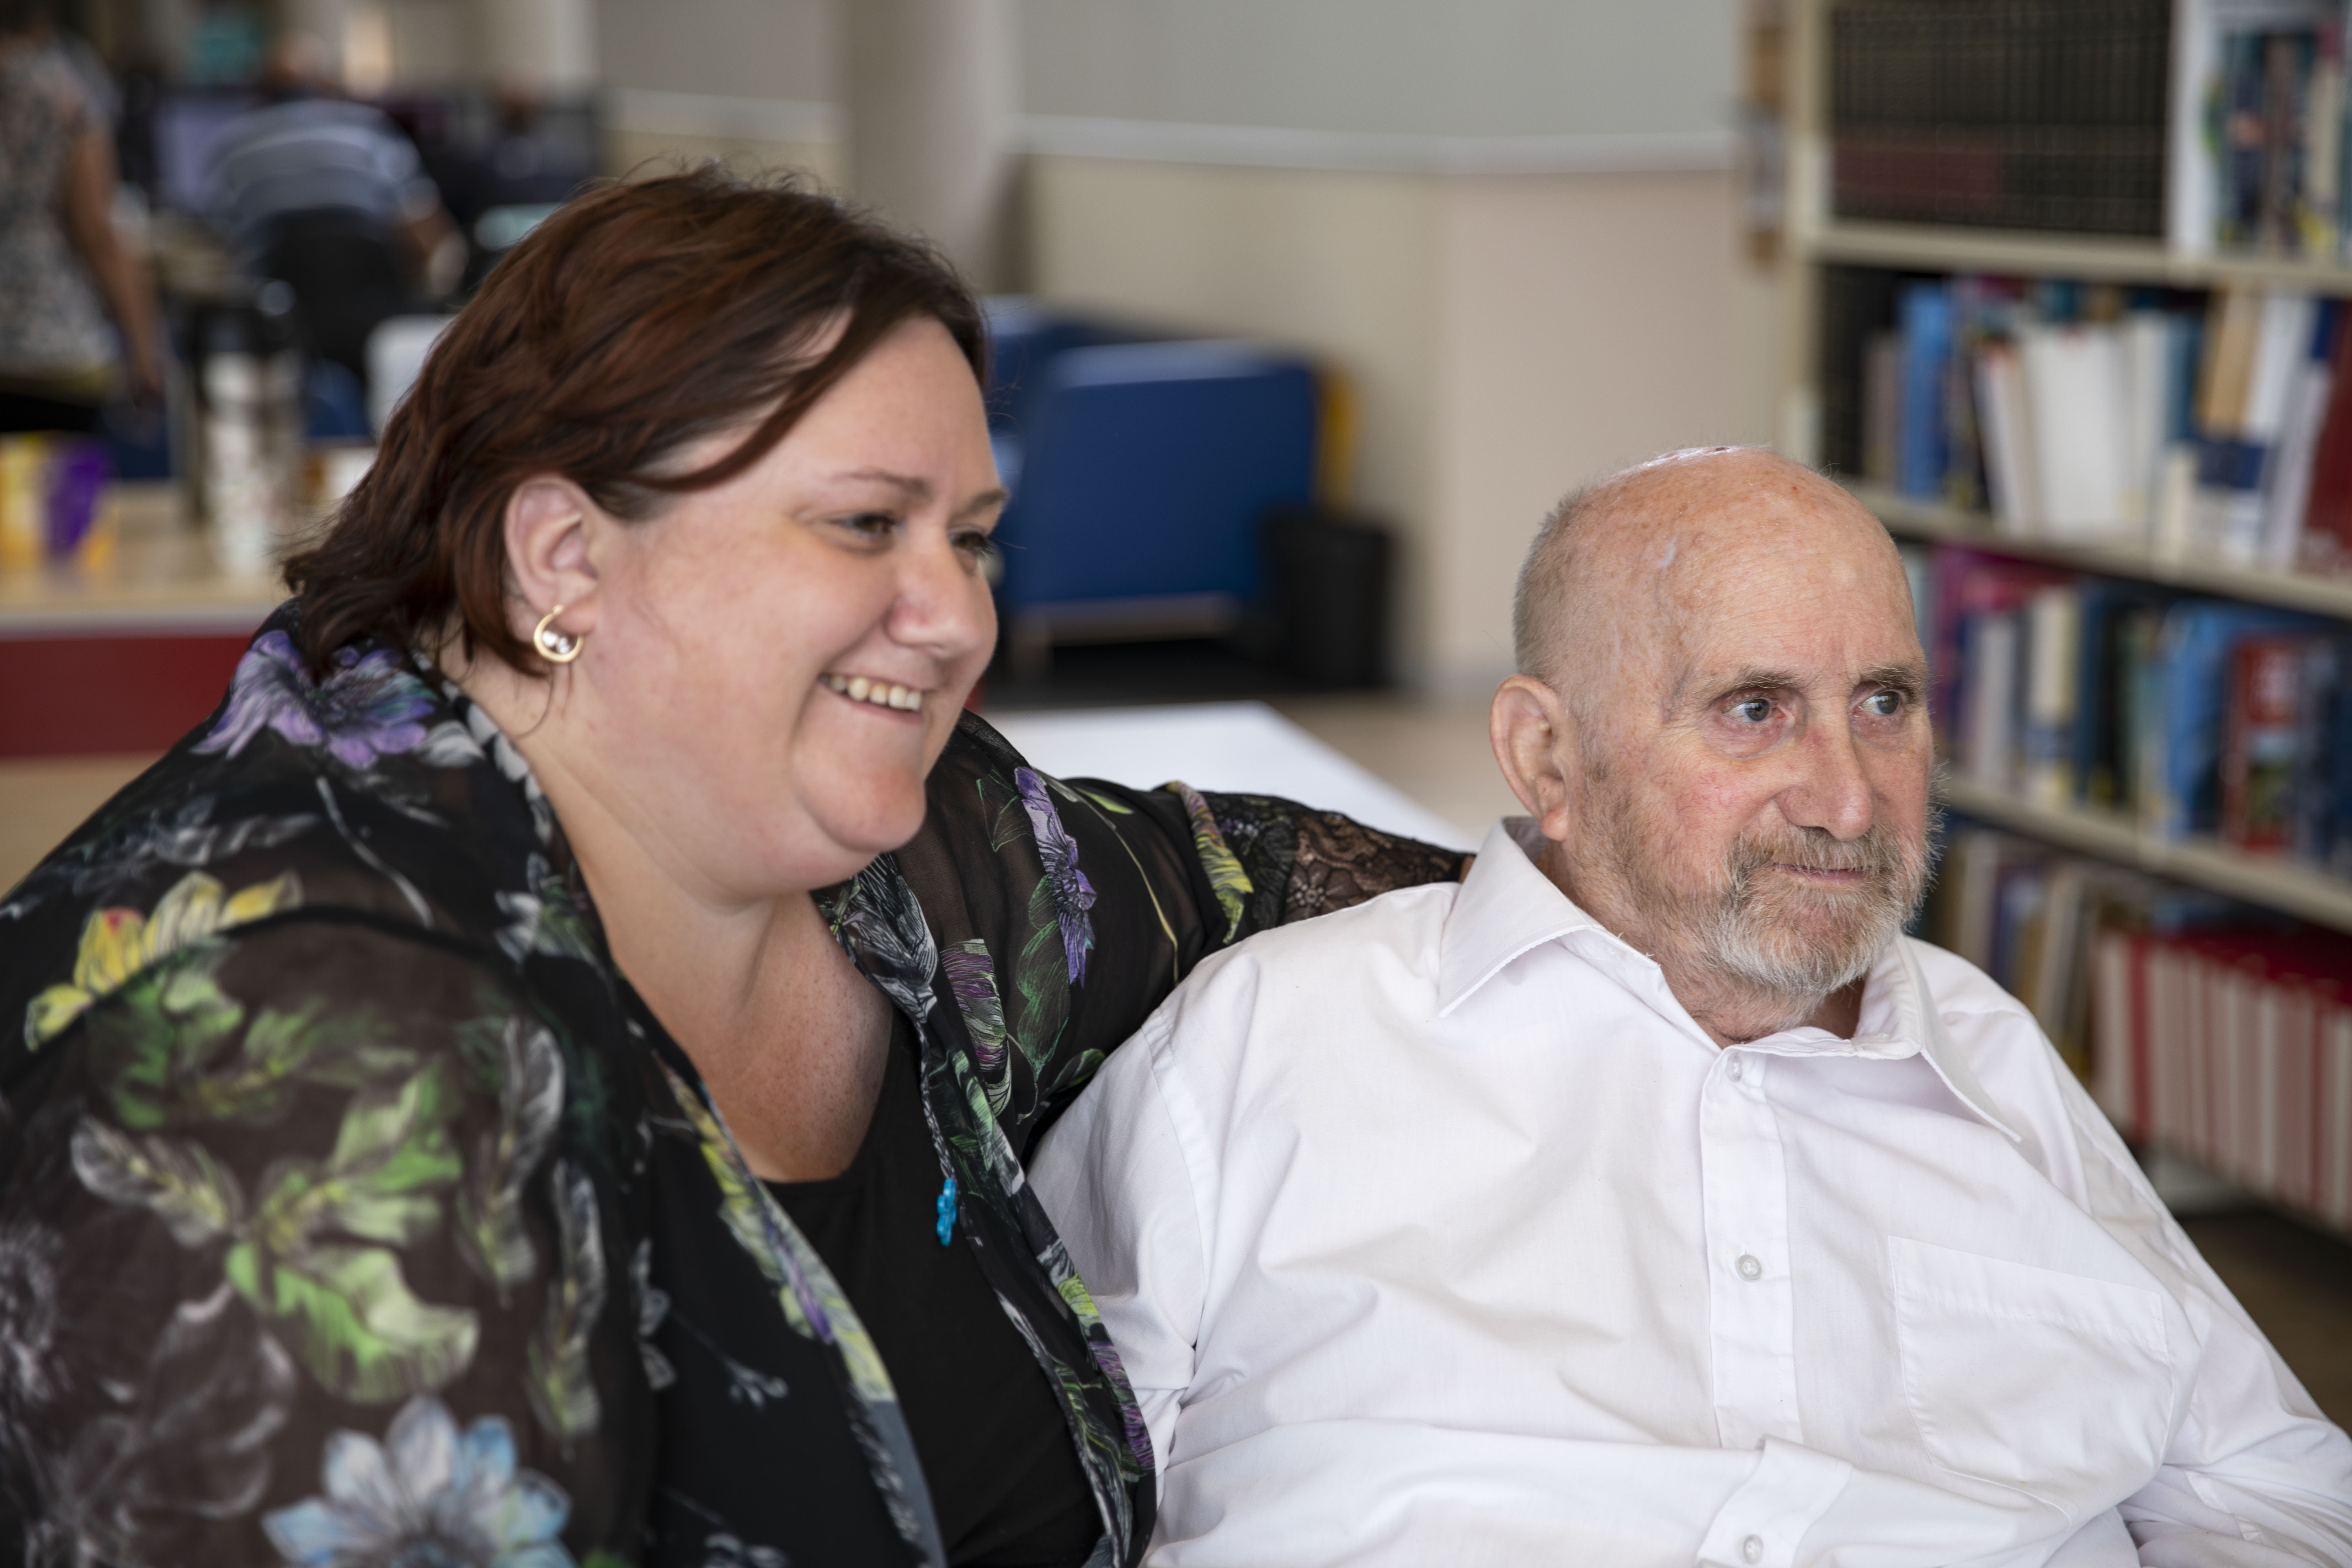 Reading Friends Yarn, Natter, Blether - Living with Dementia clip